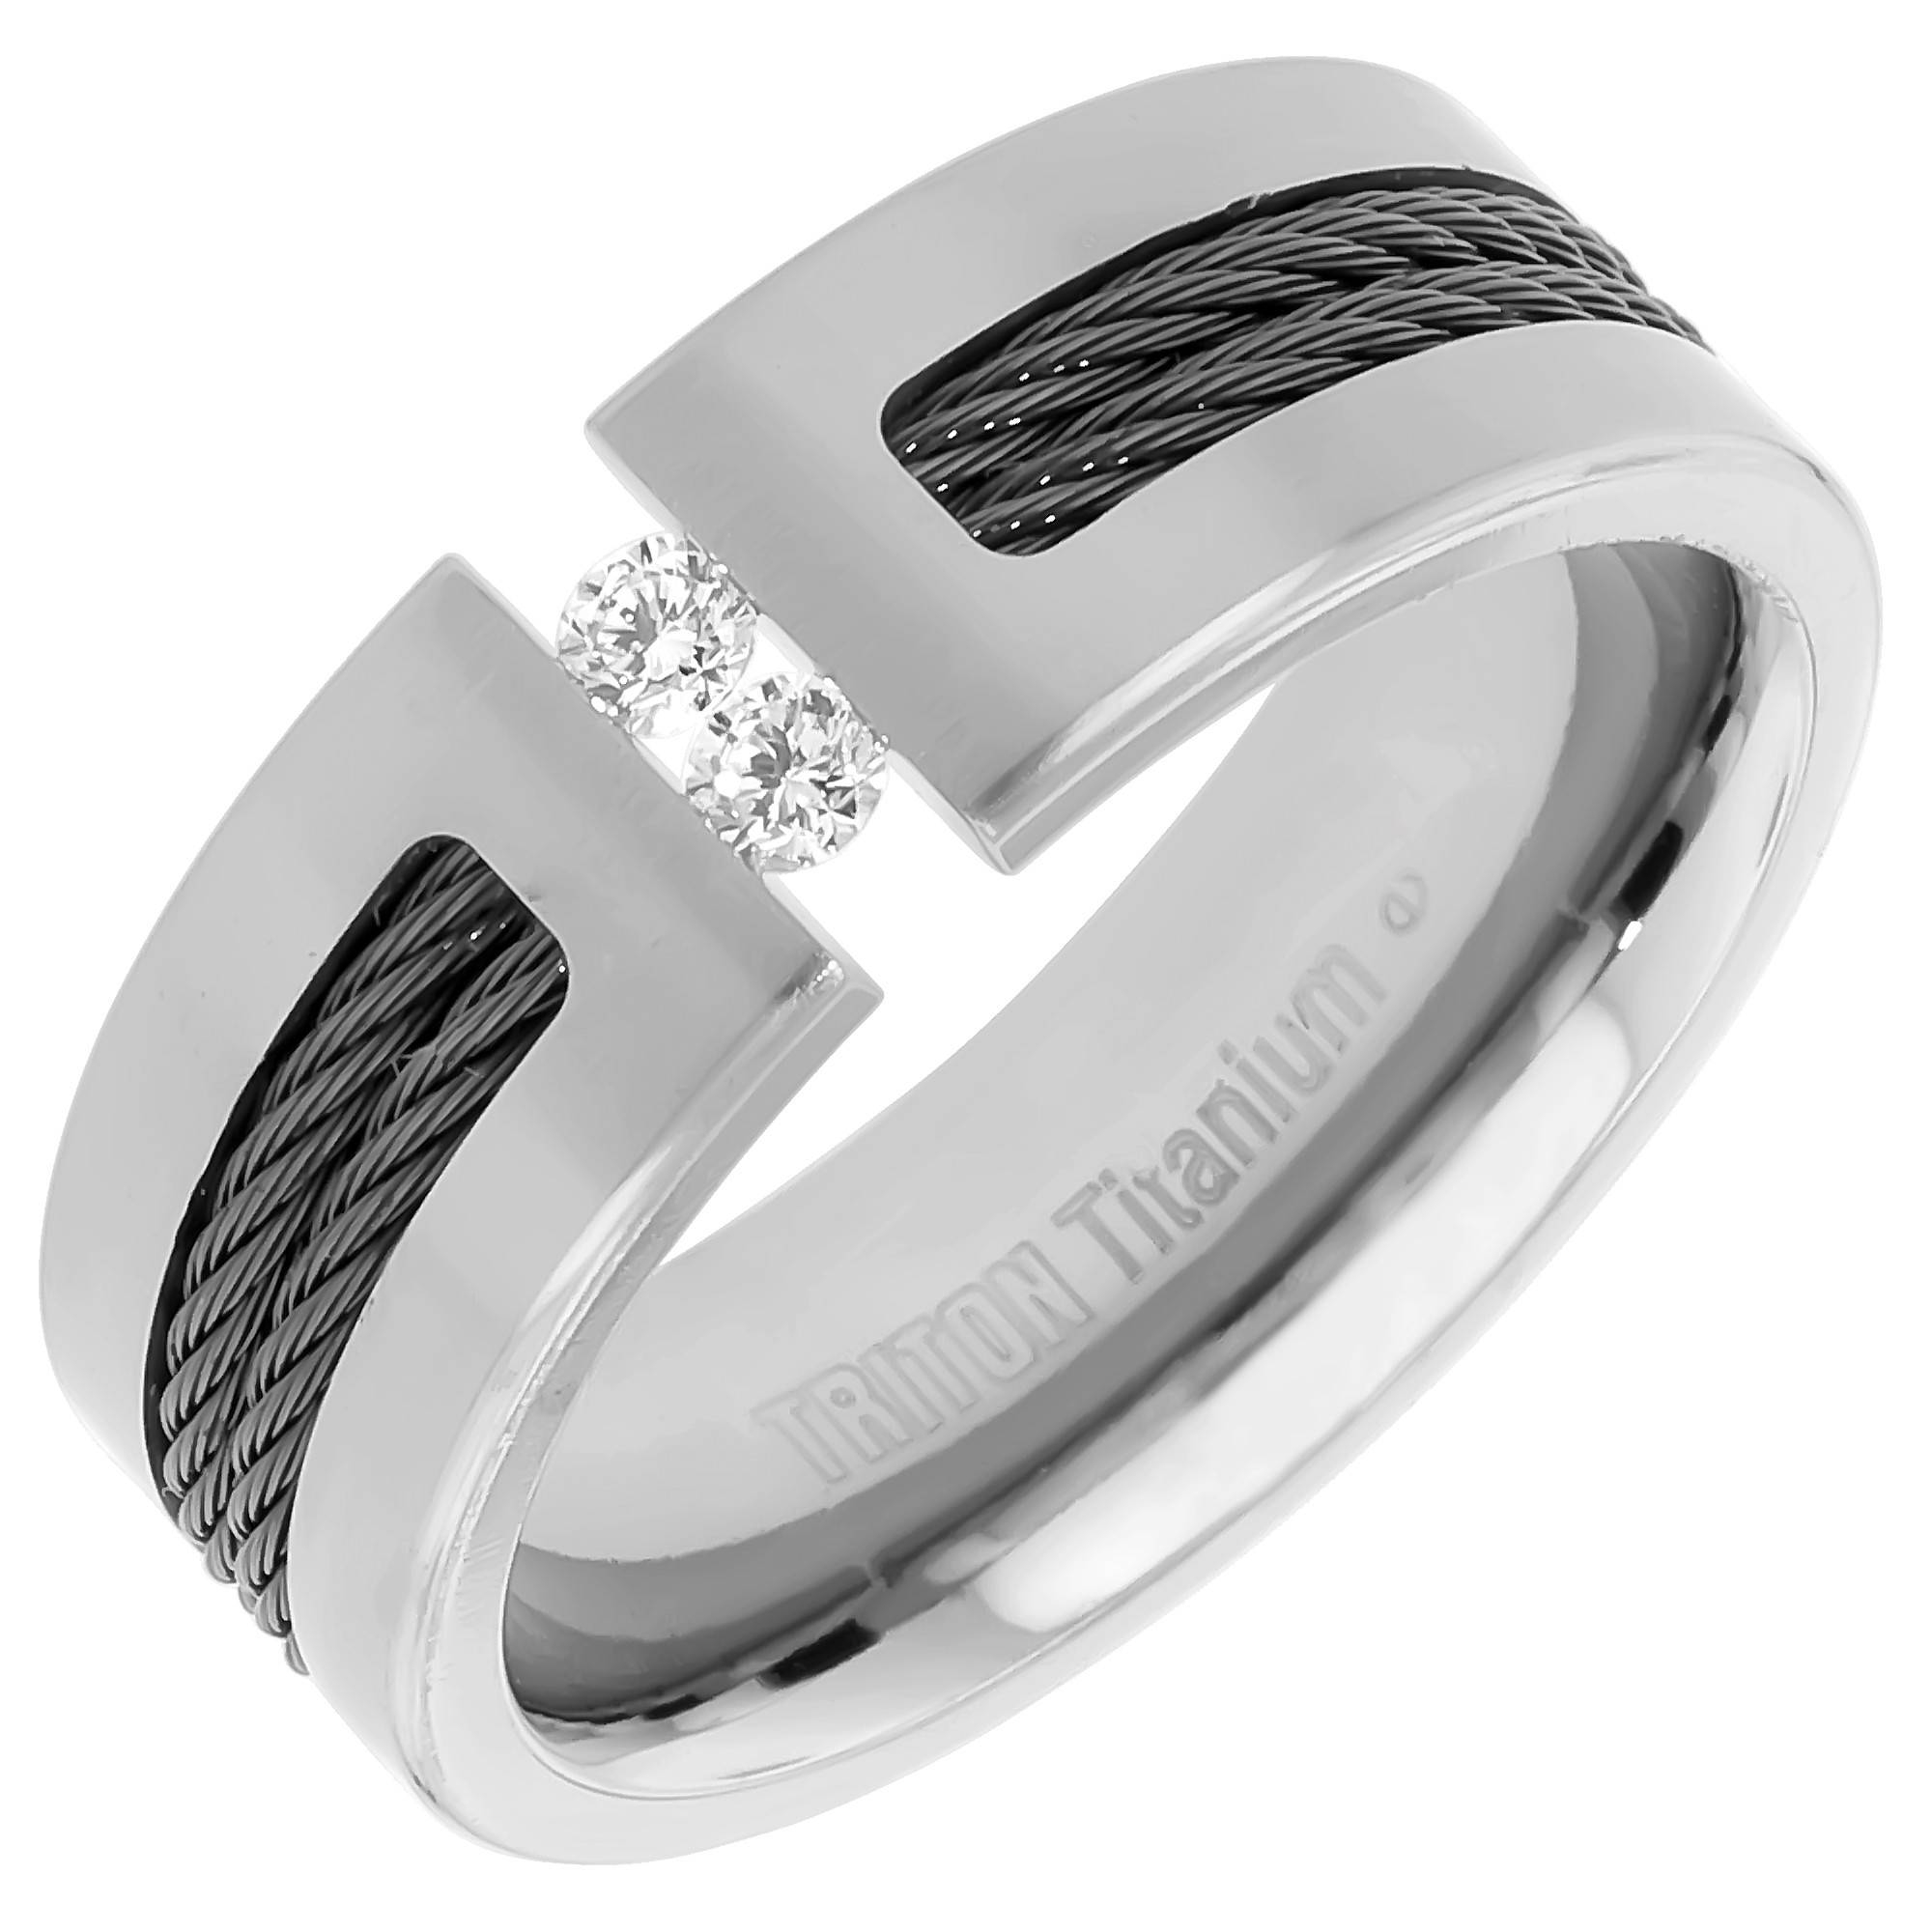 Mens Diamond Wedding Band In Titanium (8Mm) Regarding Men's Black Wedding Bands With Diamonds (Gallery 7 of 15)